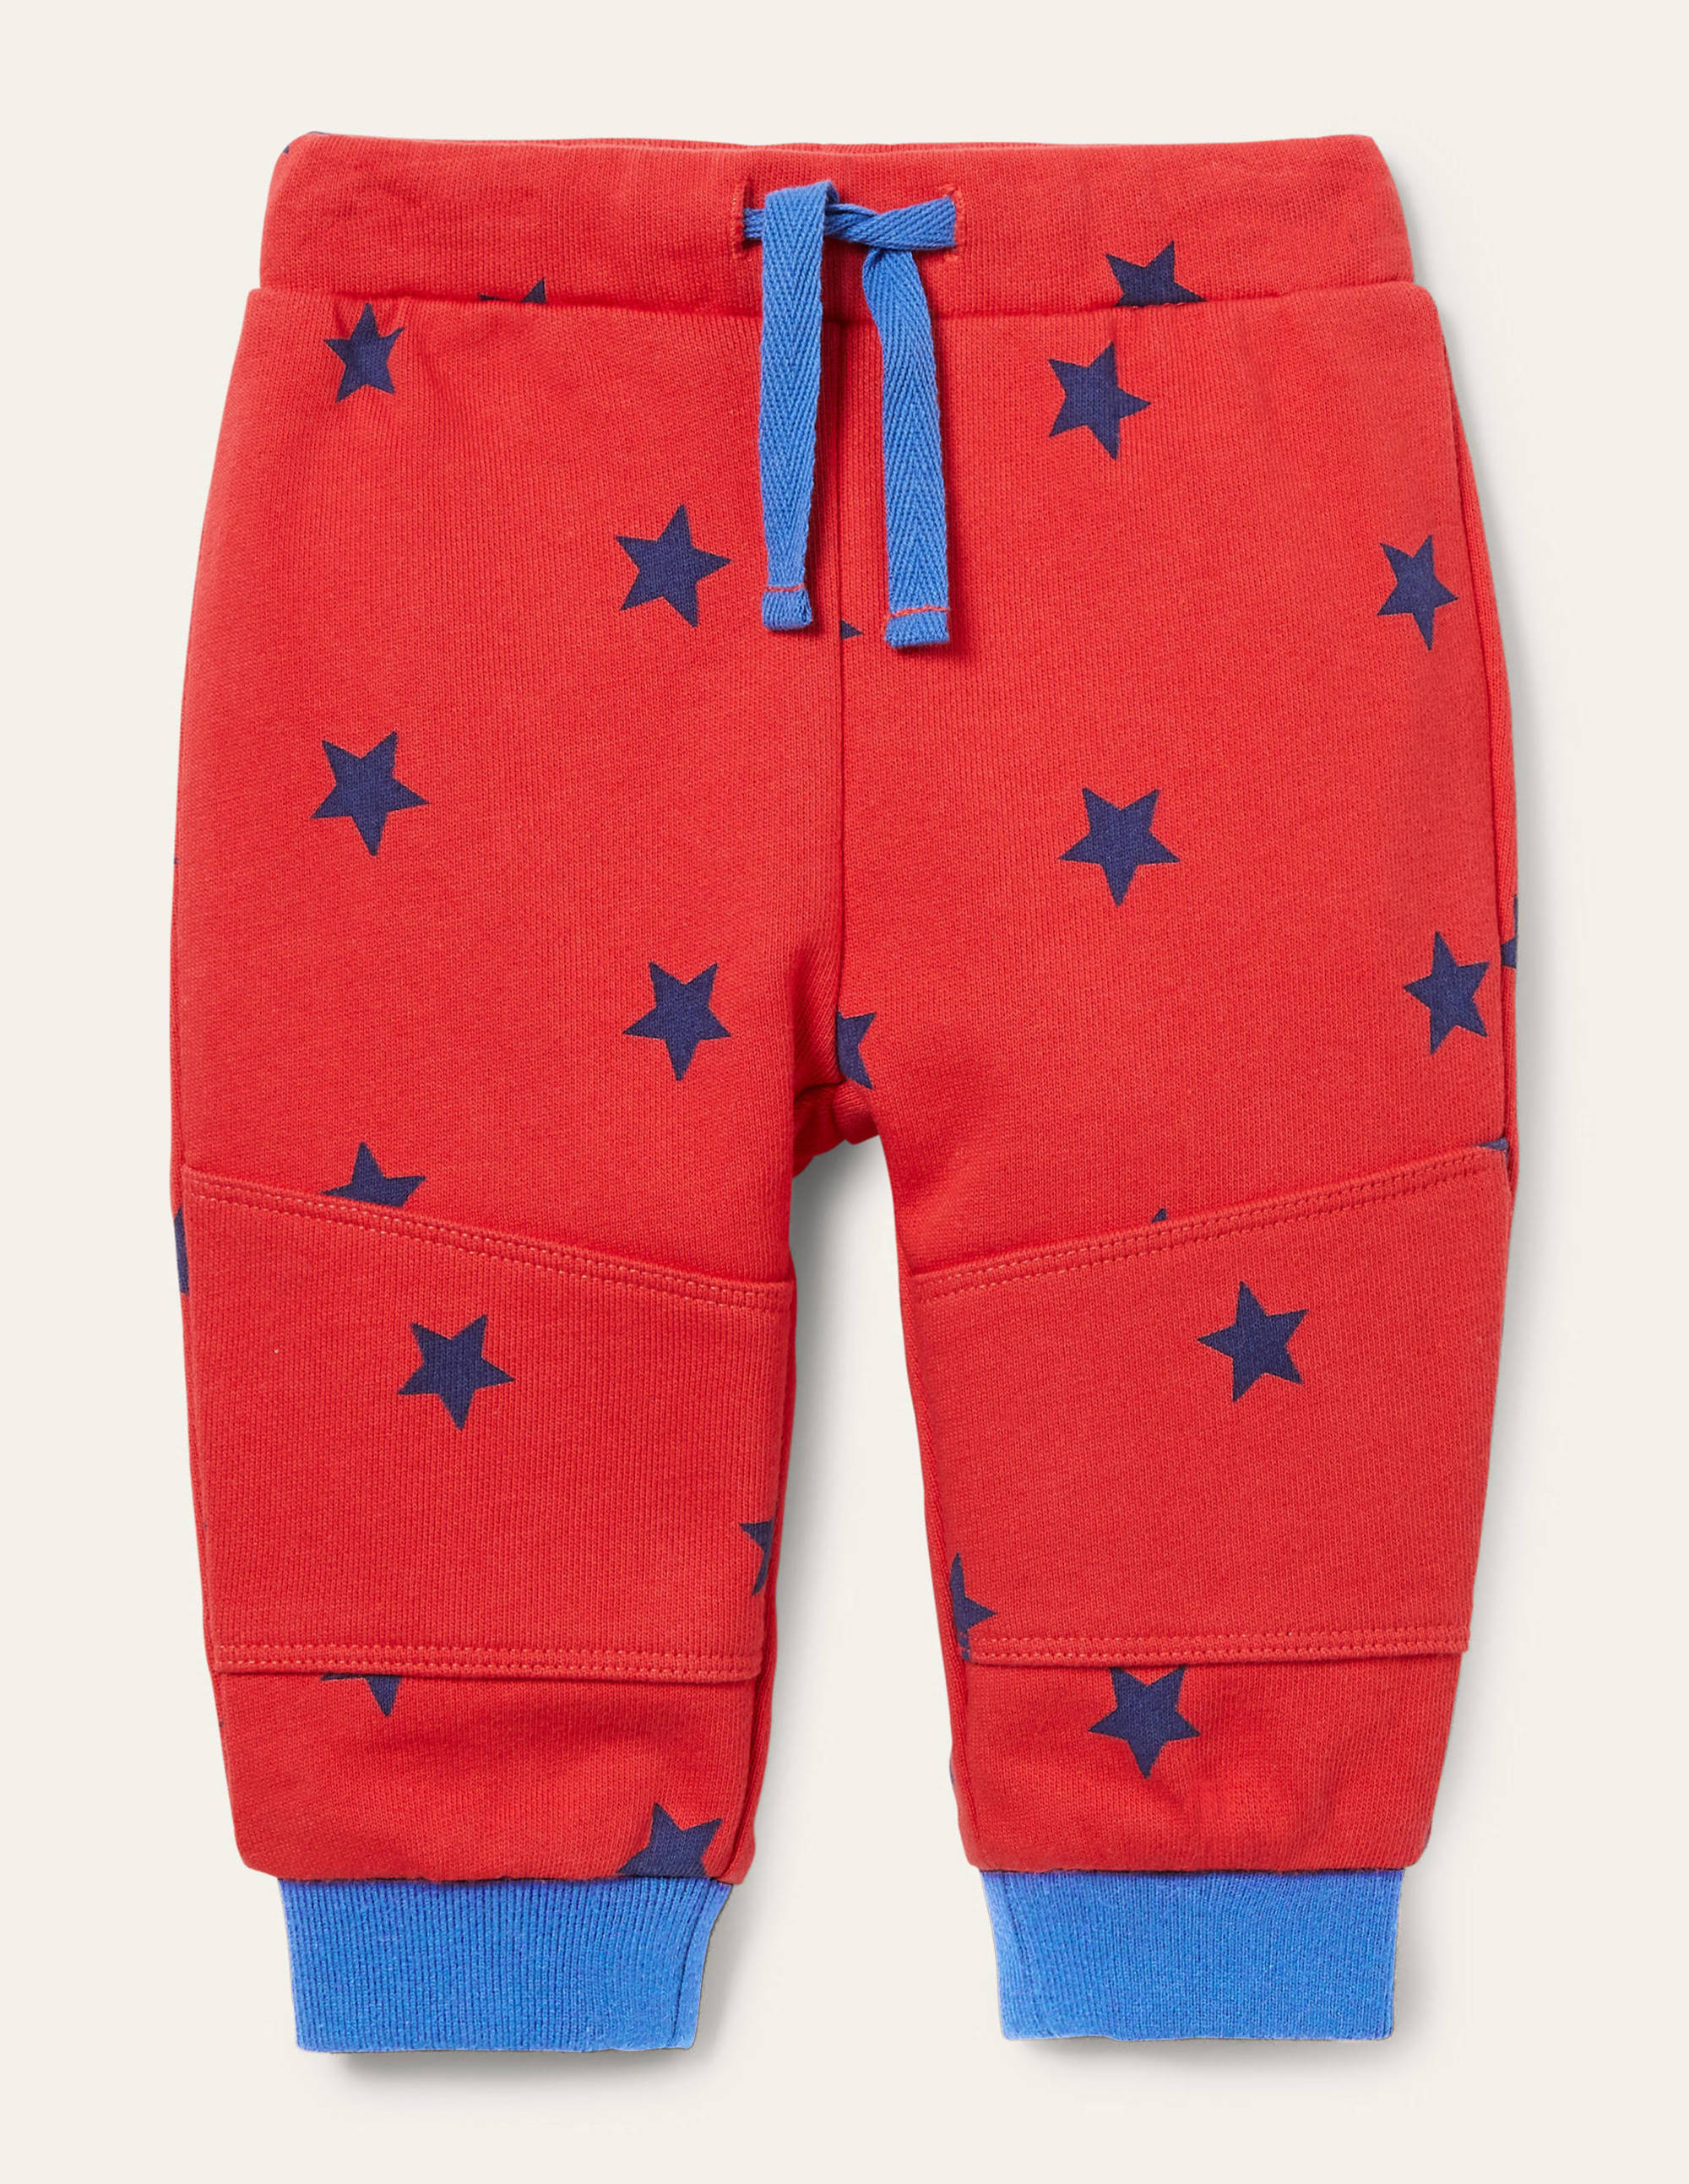 Boden Warrior Knee Jersey Bottoms - Cherry Tomato Stars